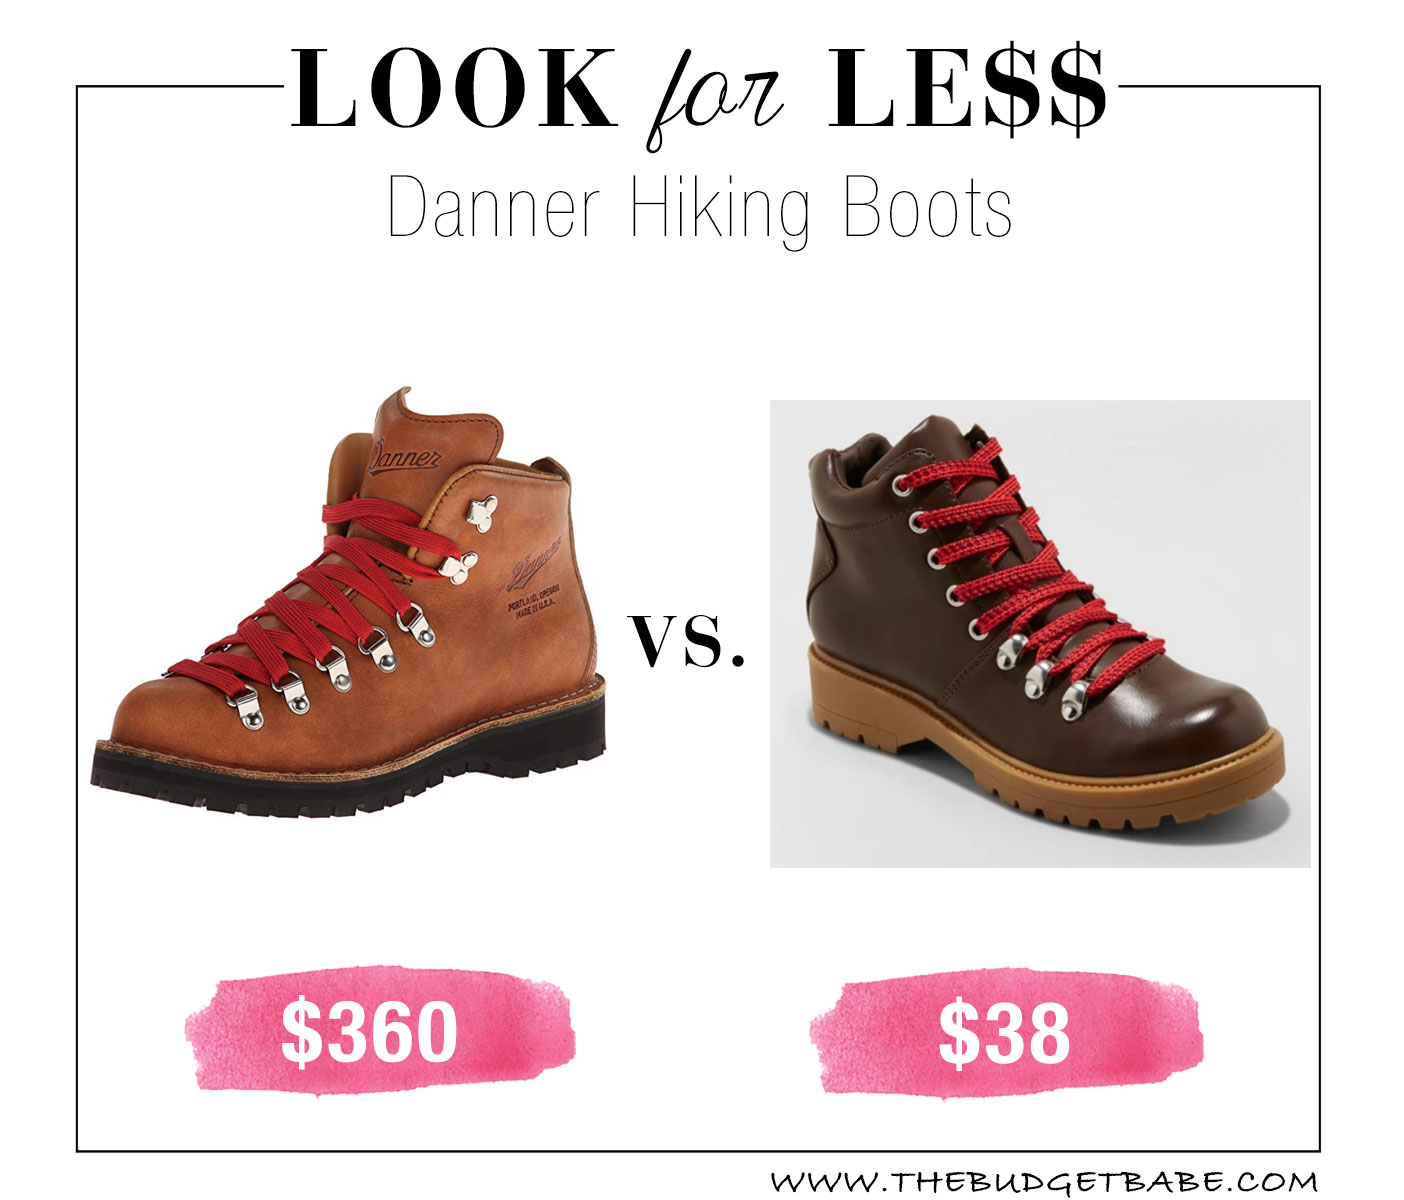 Danner hiking boot dupes at Target!